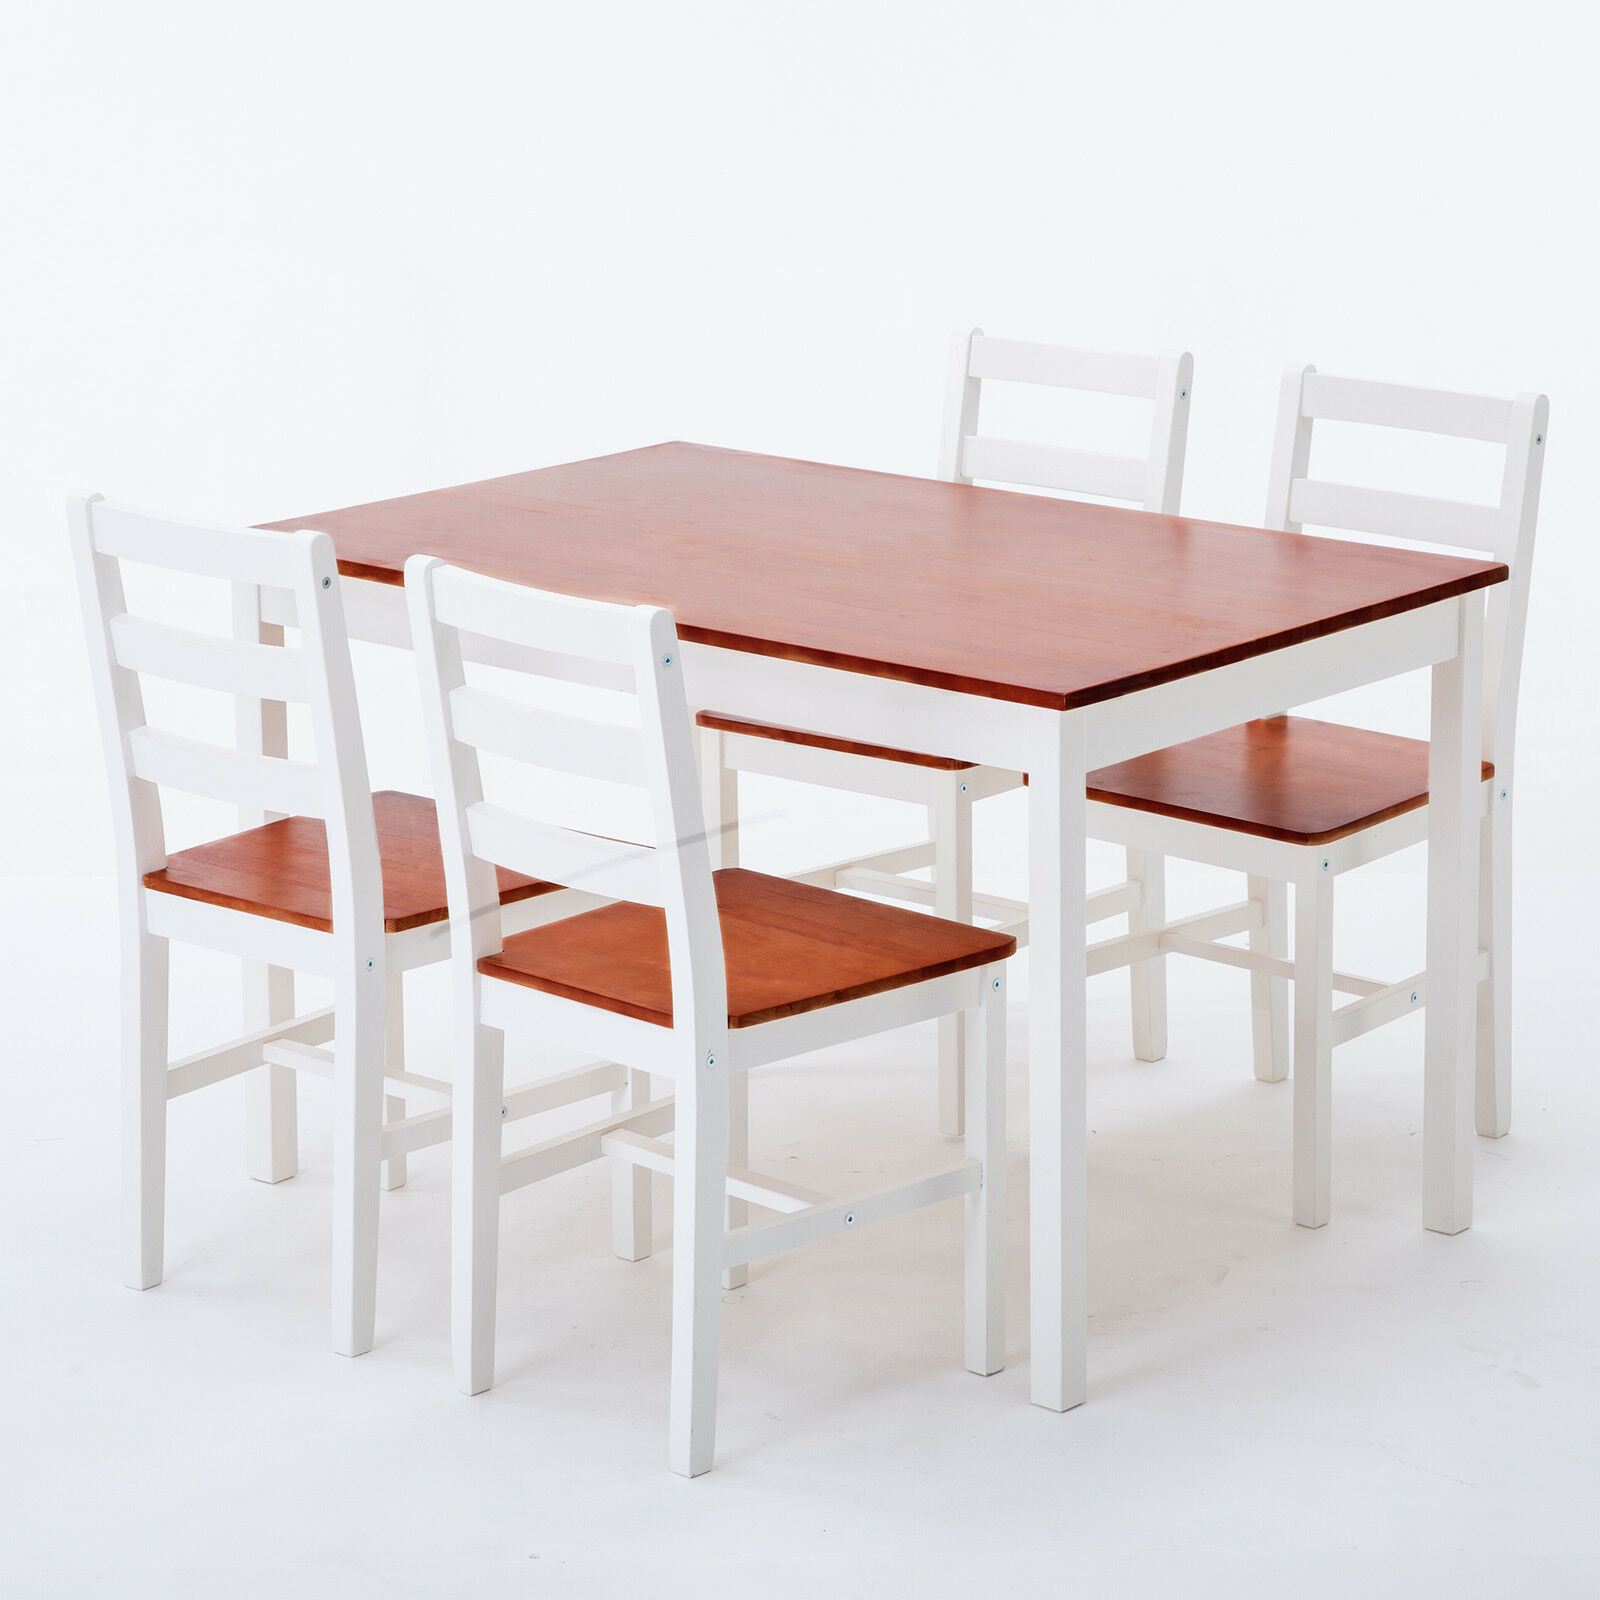 Details About 5 Piece Pine Wood Dining Table Set With 4 Chairs Breakfast Kitchen Furniture